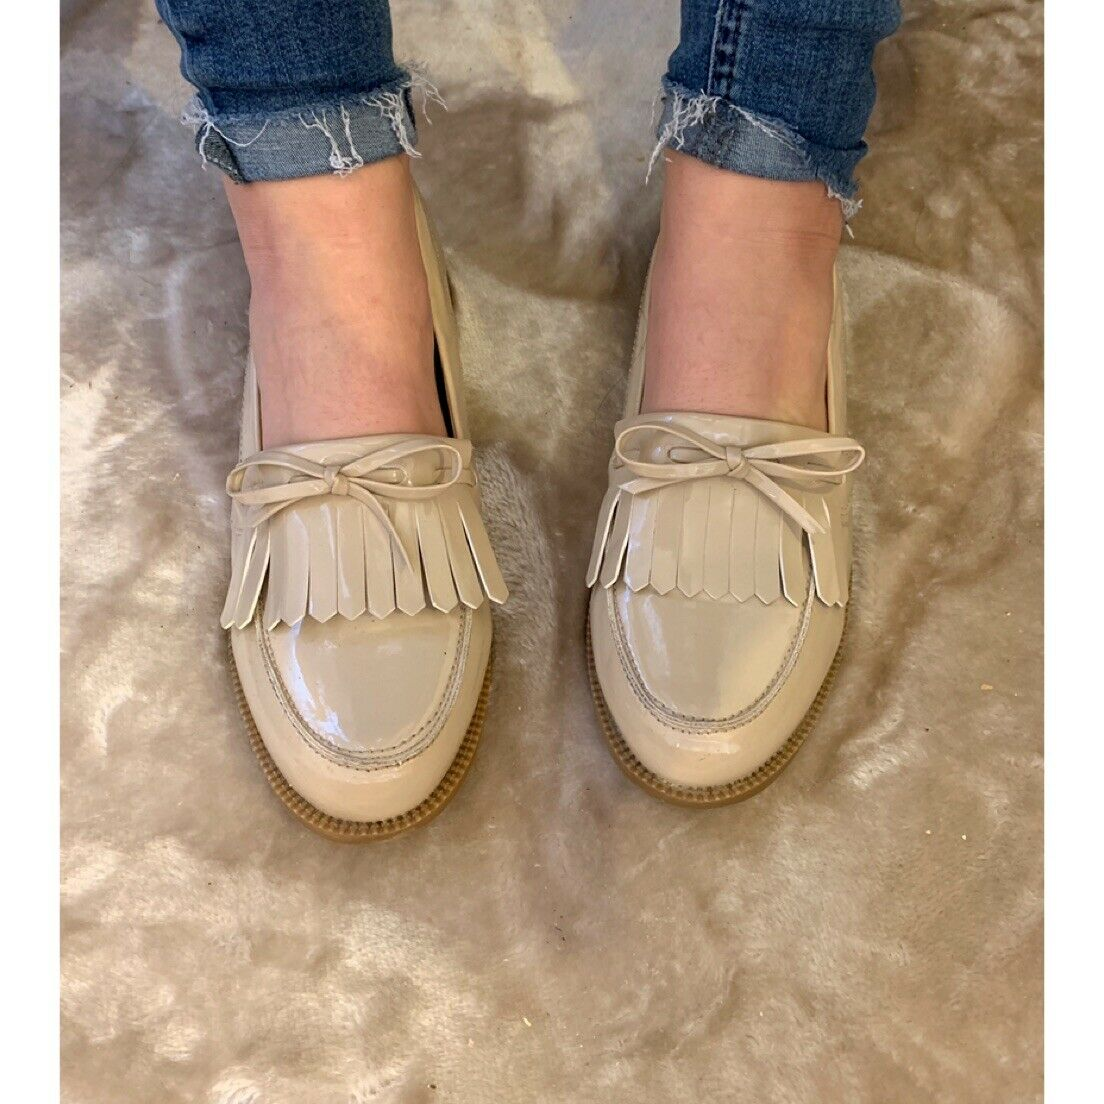 Boohoo Nude Patent Tassel Loafers. Size 8. Worn Once.